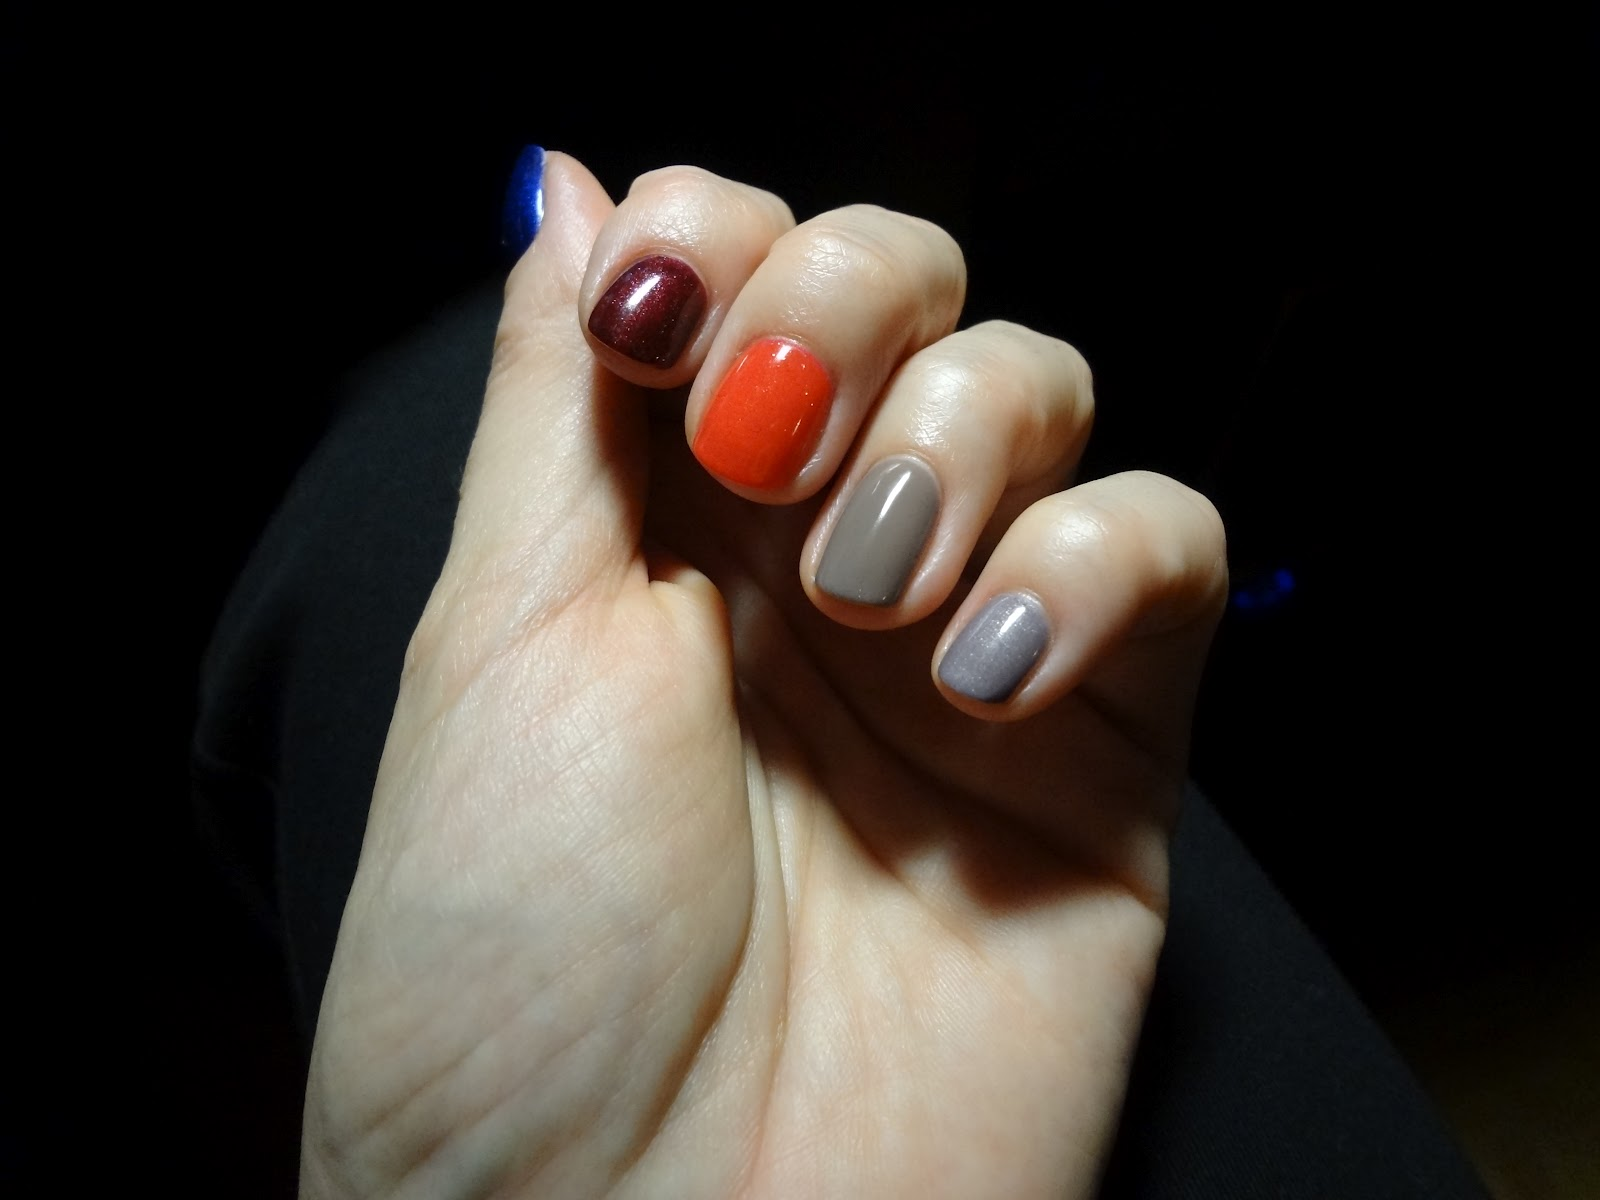 Polished 4 Pros: Entity (as well as Gelish and Artistic Color Gloss)